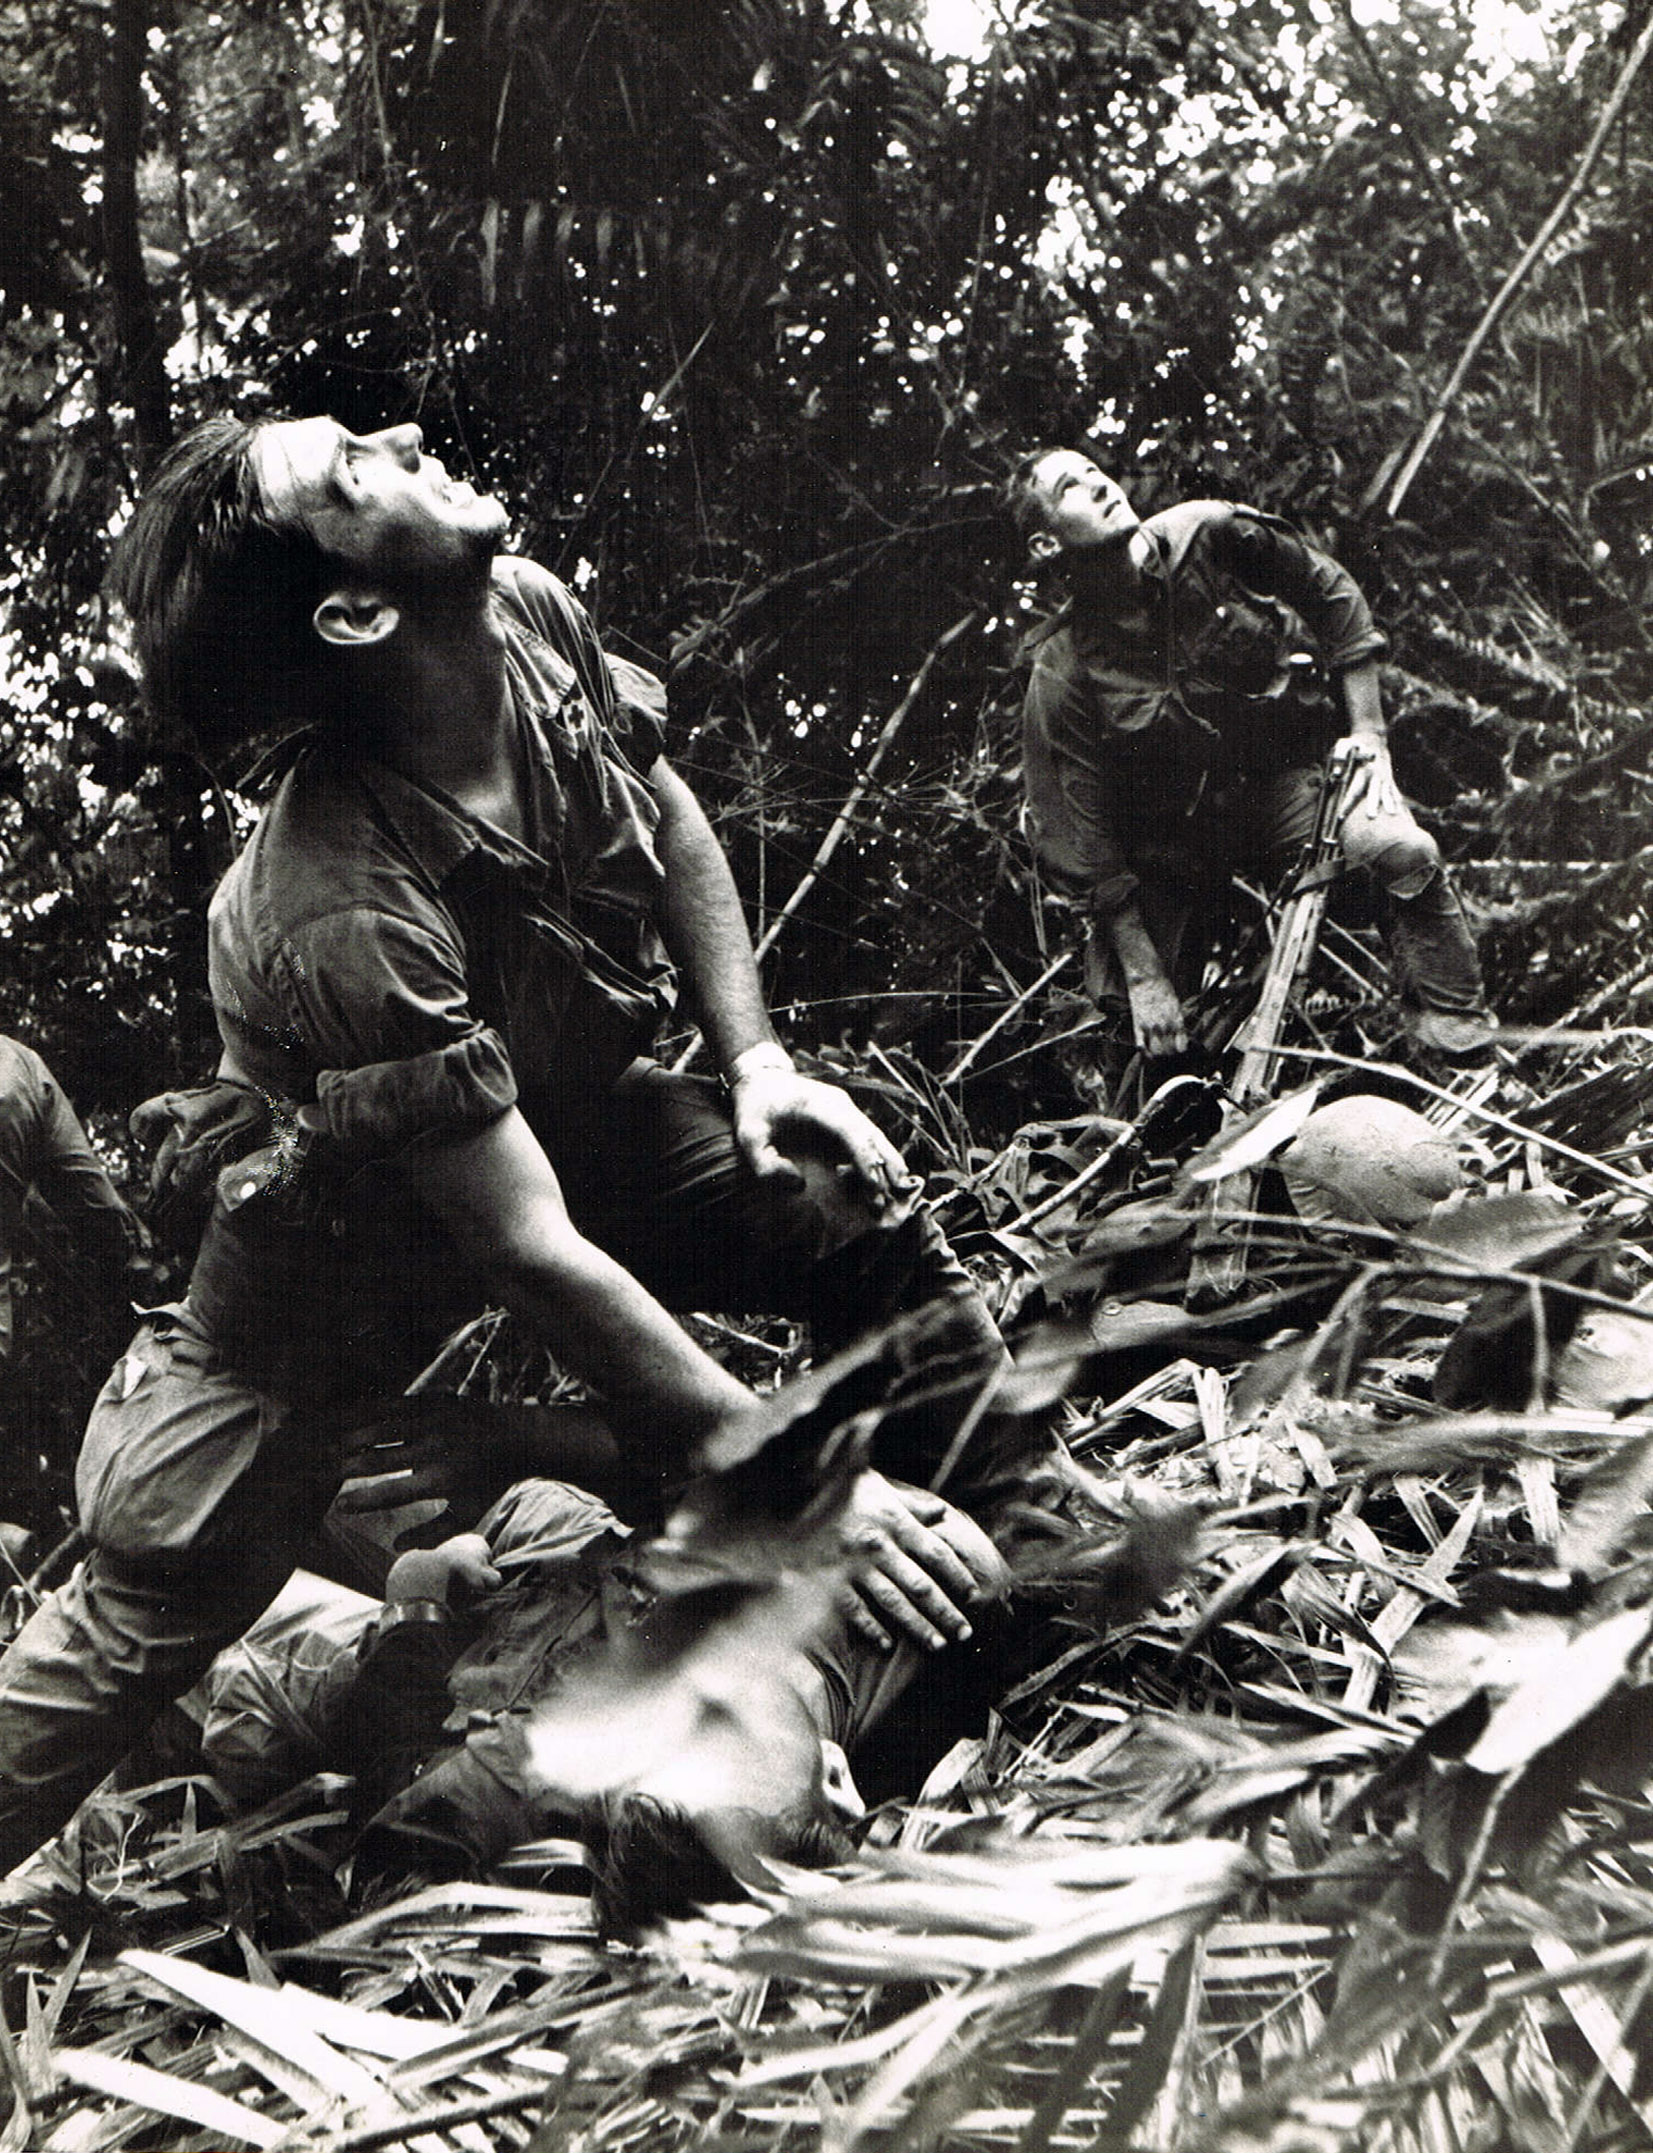 A paratrooper of A Company, 101st Airborne, guides a medical evacuation helicopter through the jungle foliage to pick up casualties during a five-day patrol of an area southwest of Hue, South Vietnam, April 1968.